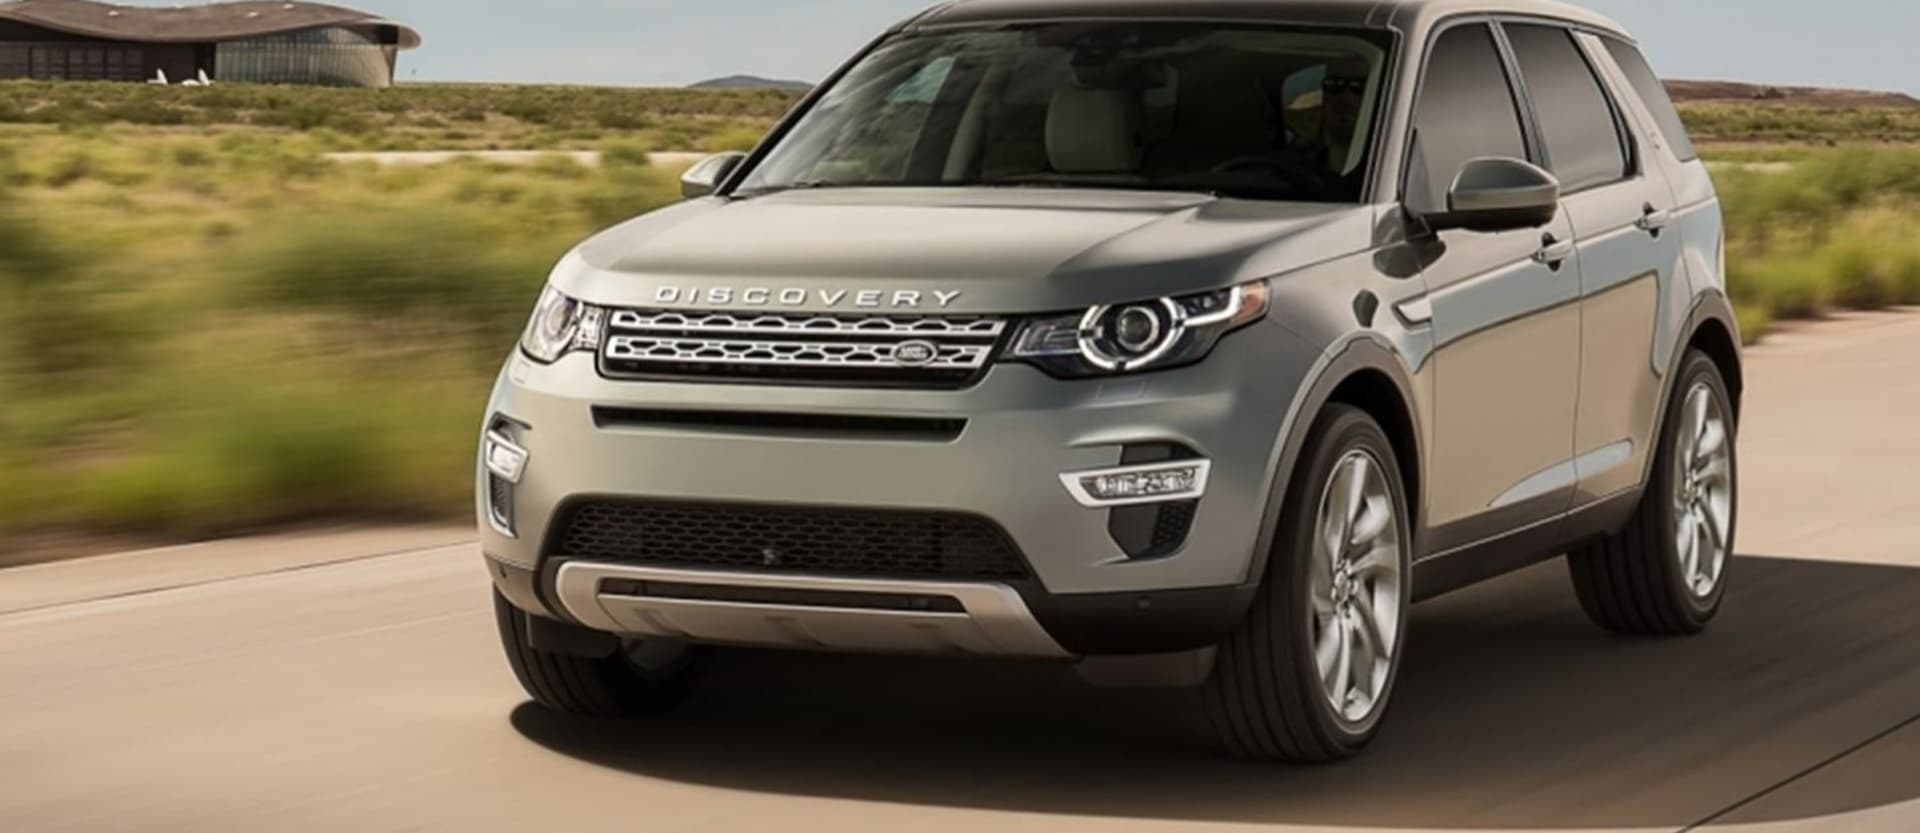 Land Rover Discovery Sport Front Qtr T Jpg